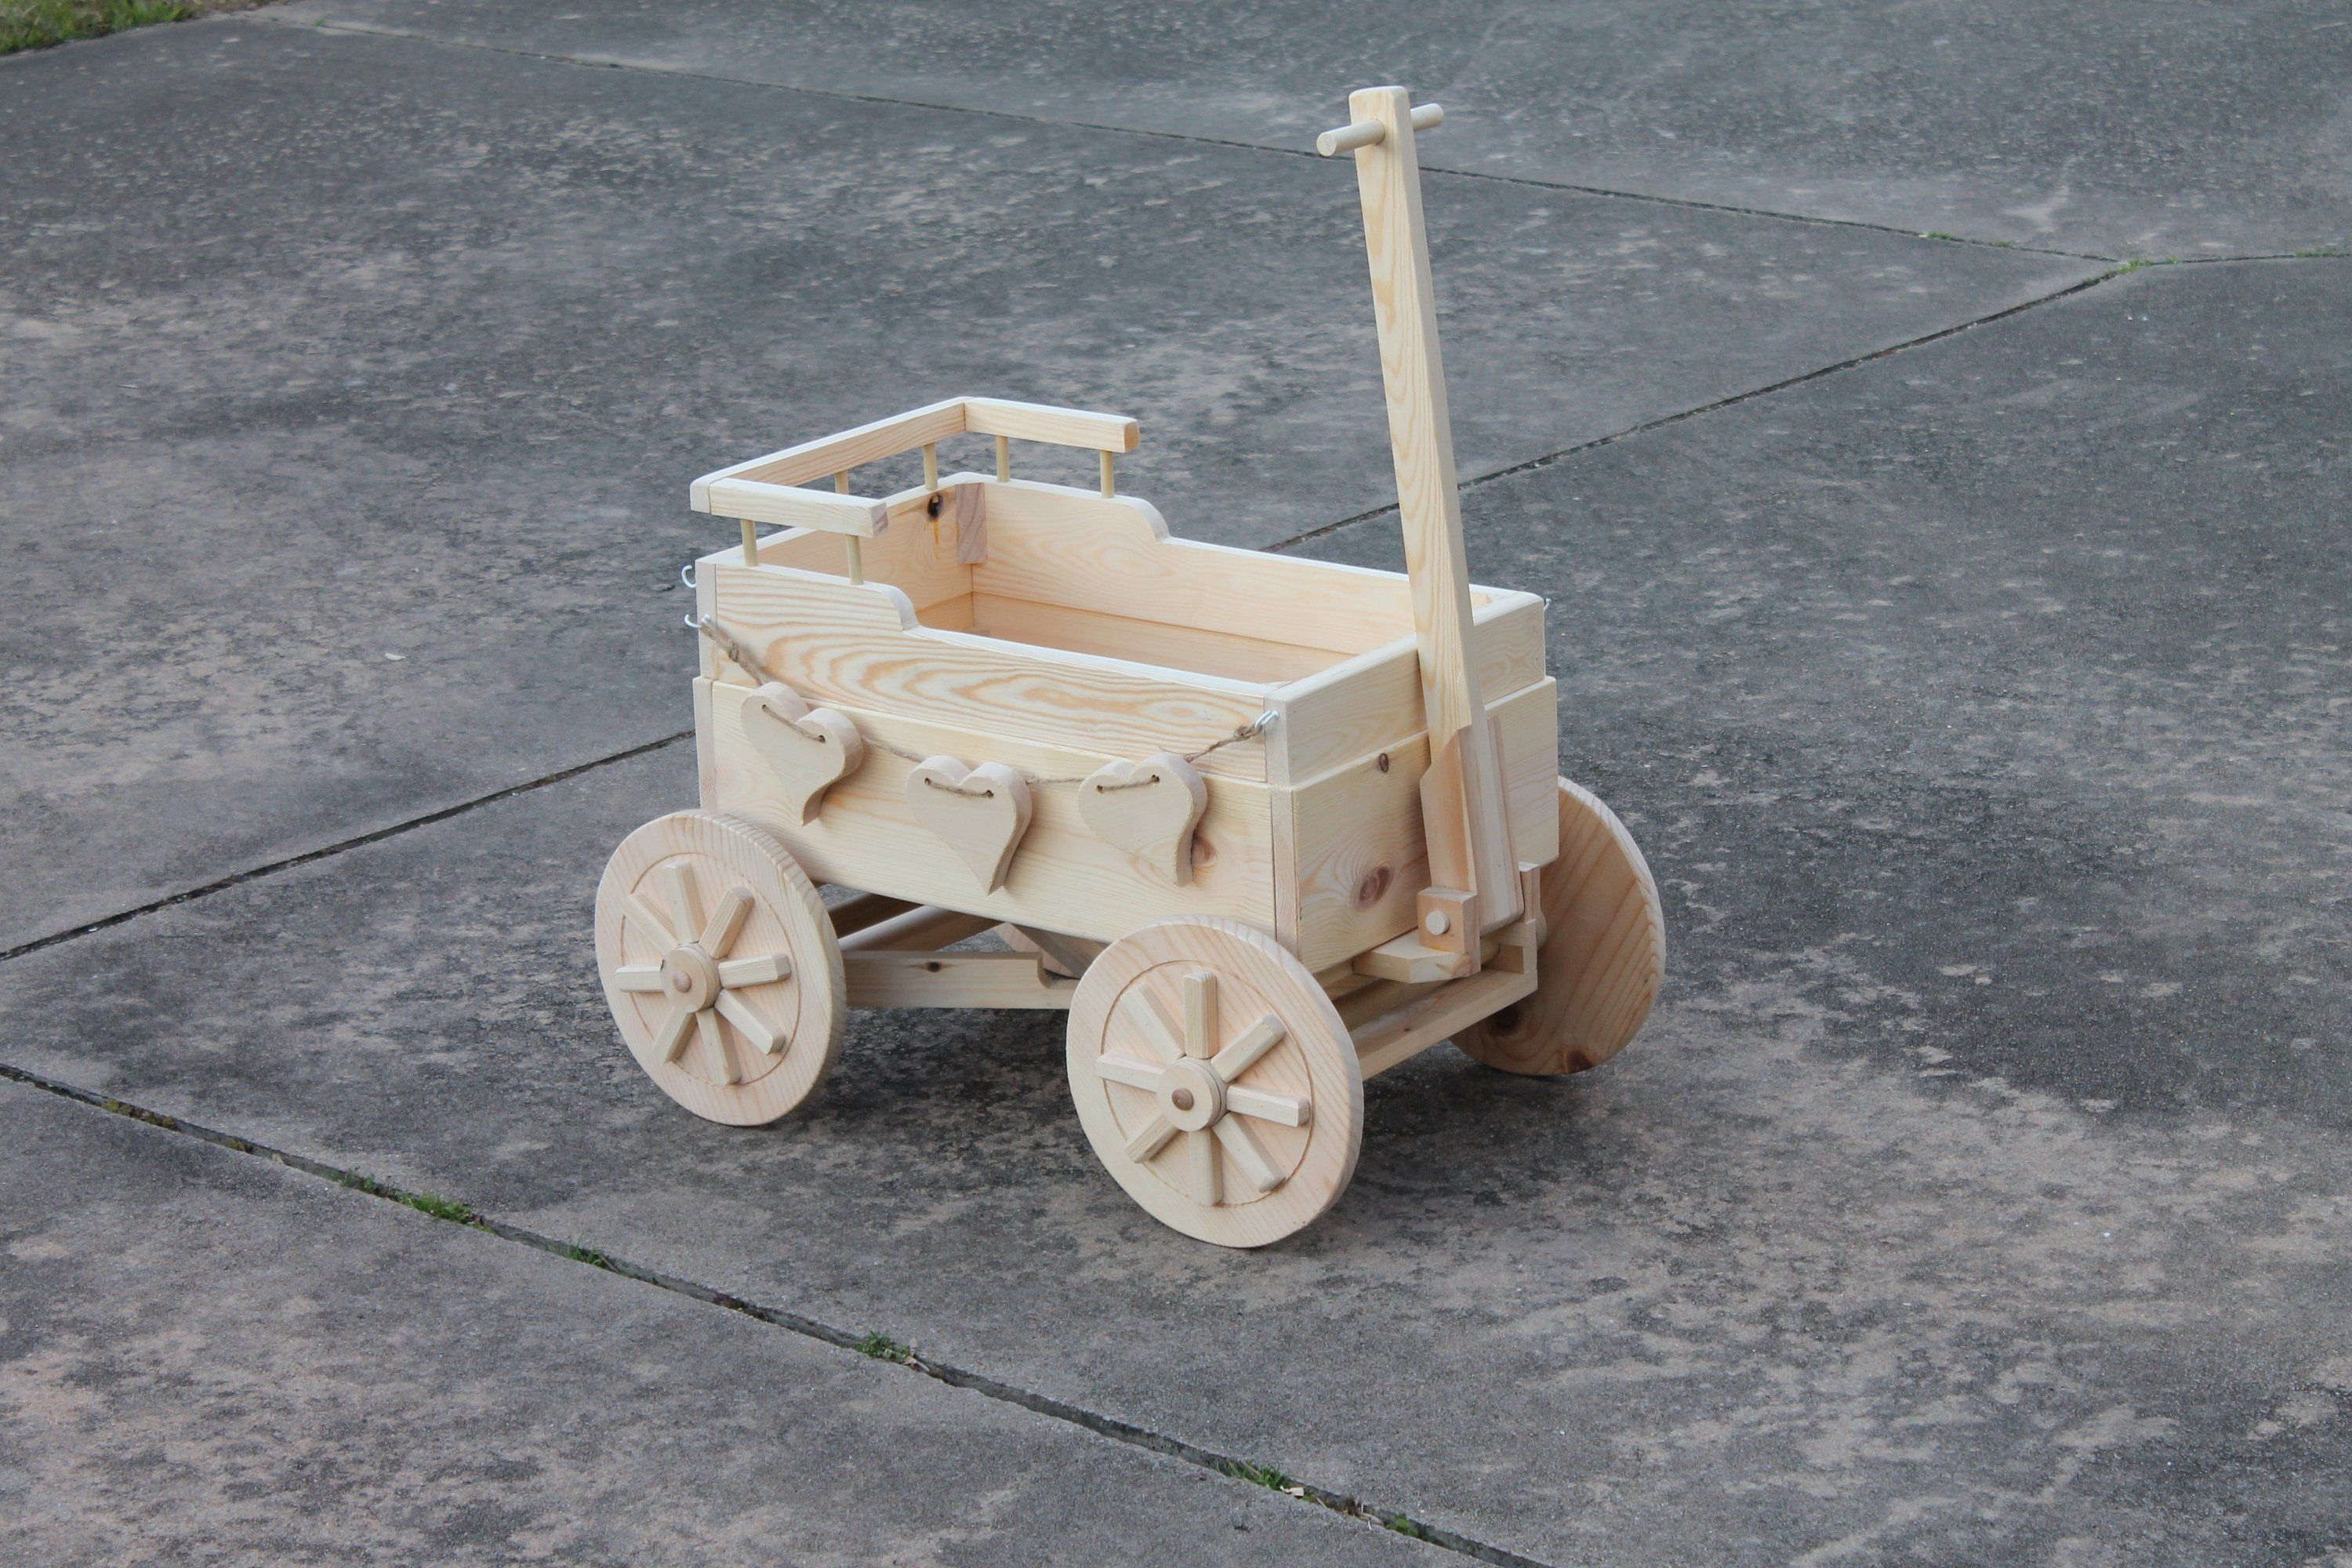 Wooden Wagon For Wedding For Babies 4 Yrs And Younger Ring Etsy Wooden Wagon Wagon For Wedding Newborn Baby Props